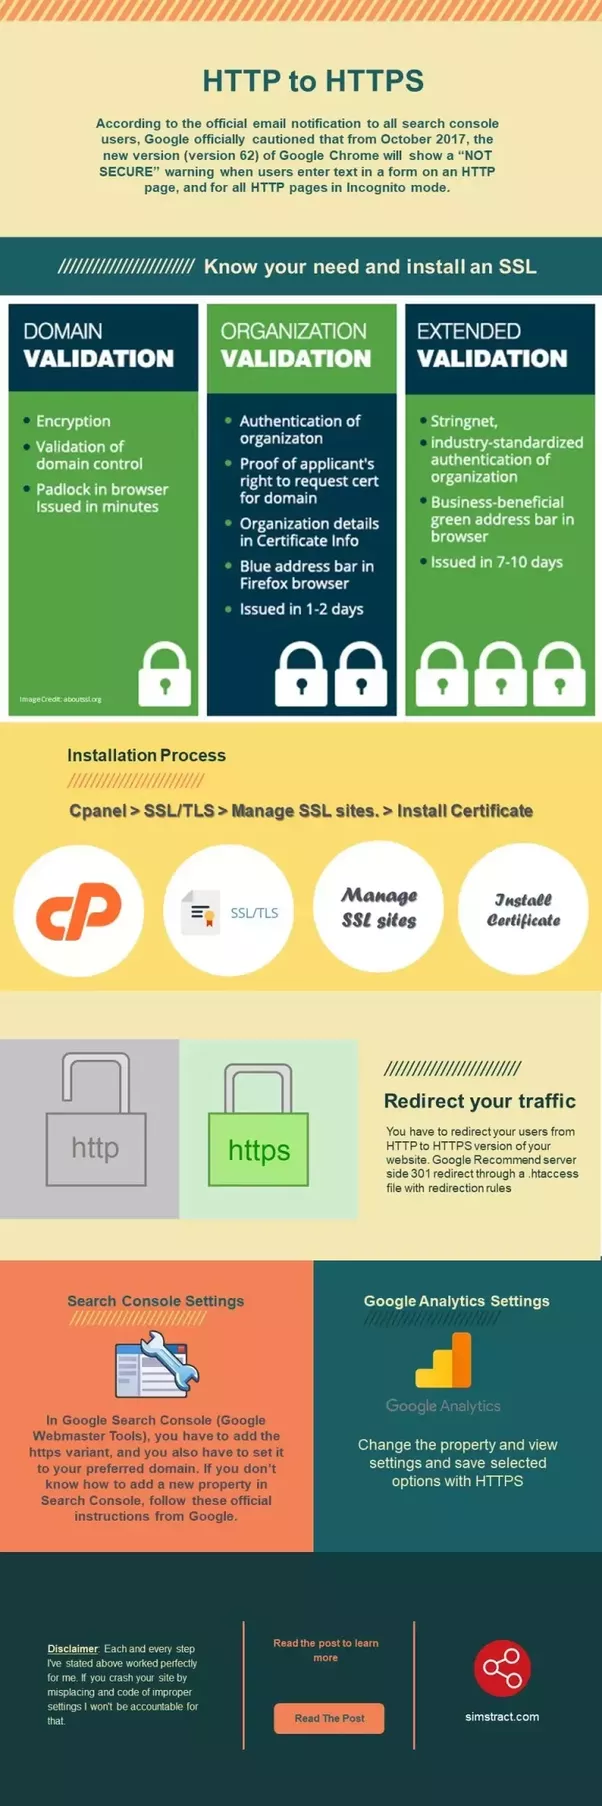 What Is The Basic Use Of An Ssl Certificate Quora